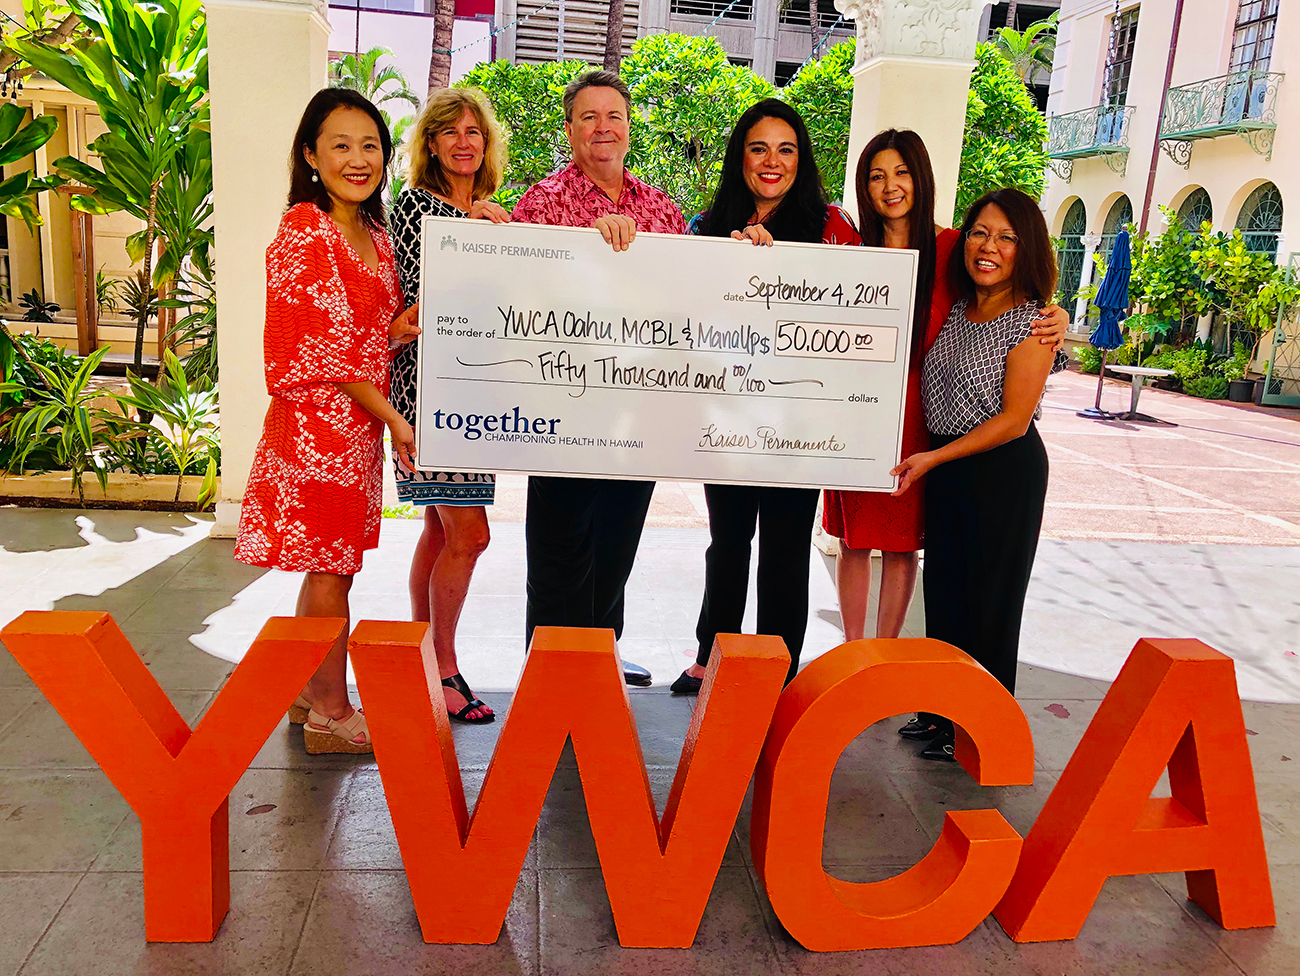 Group of 5 individuals standing by a YWCA sign and holding a giant check representing a grant from Kaiser Permanente